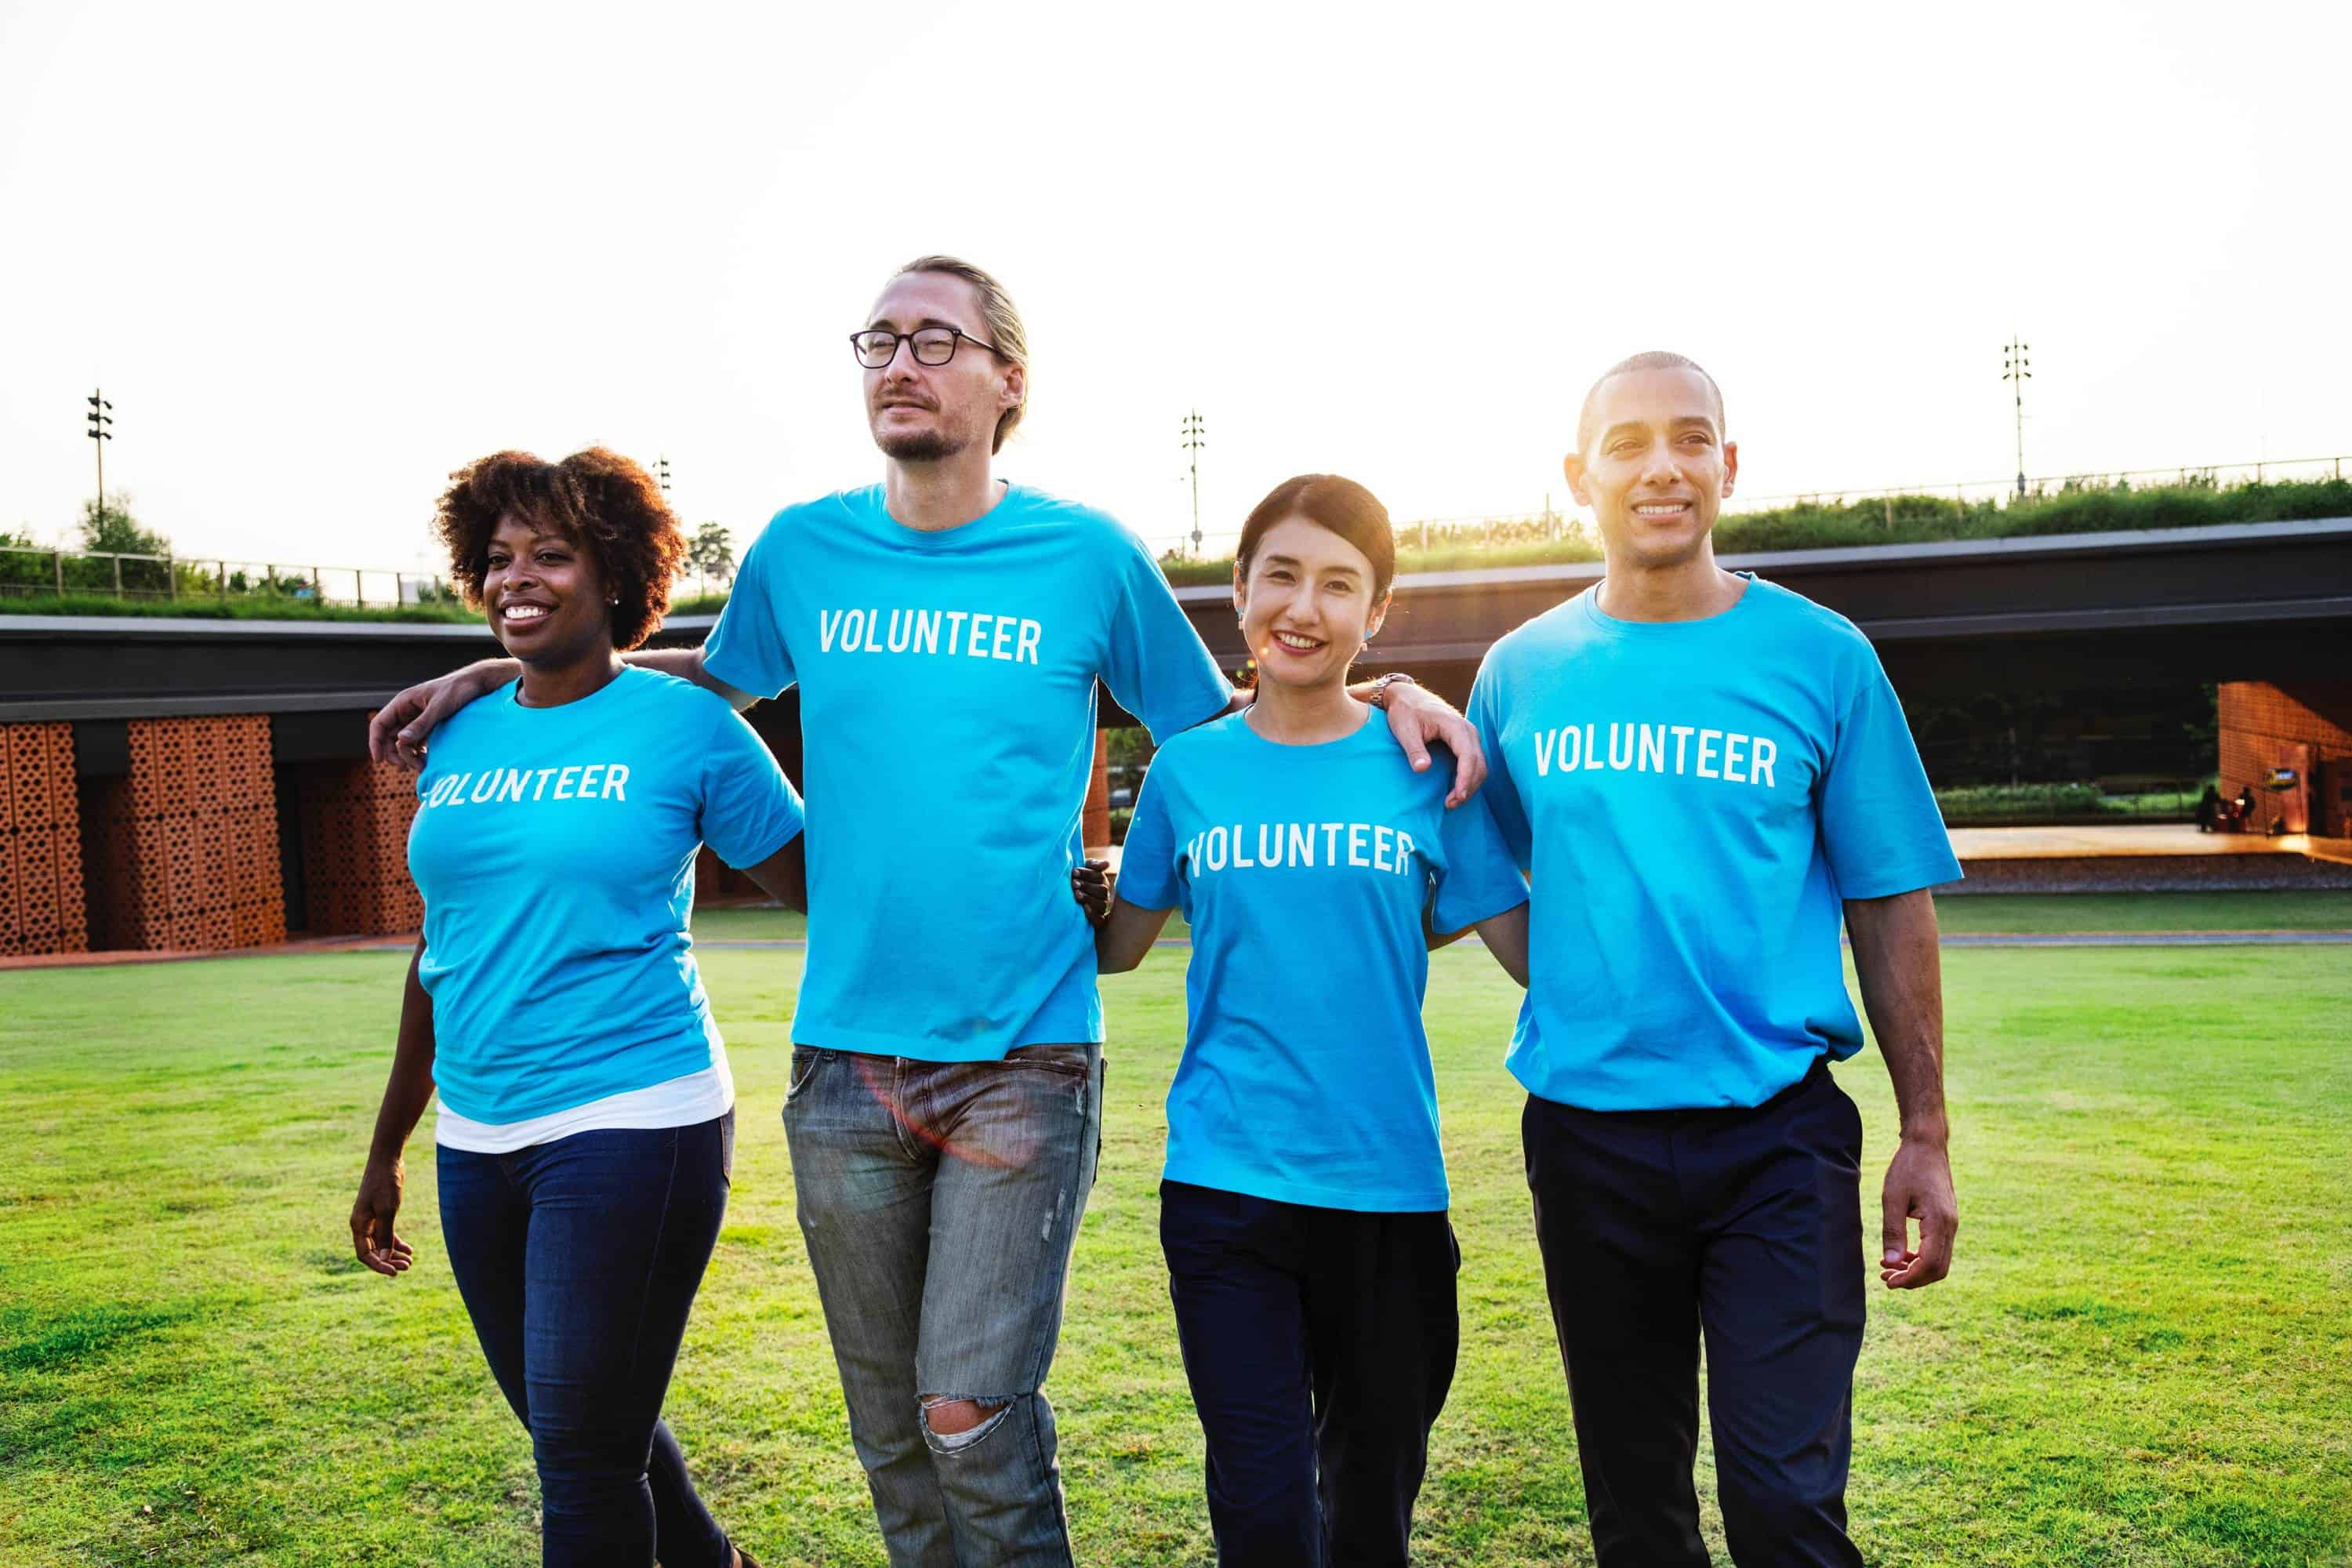 Image of four volunteers - volunteerism